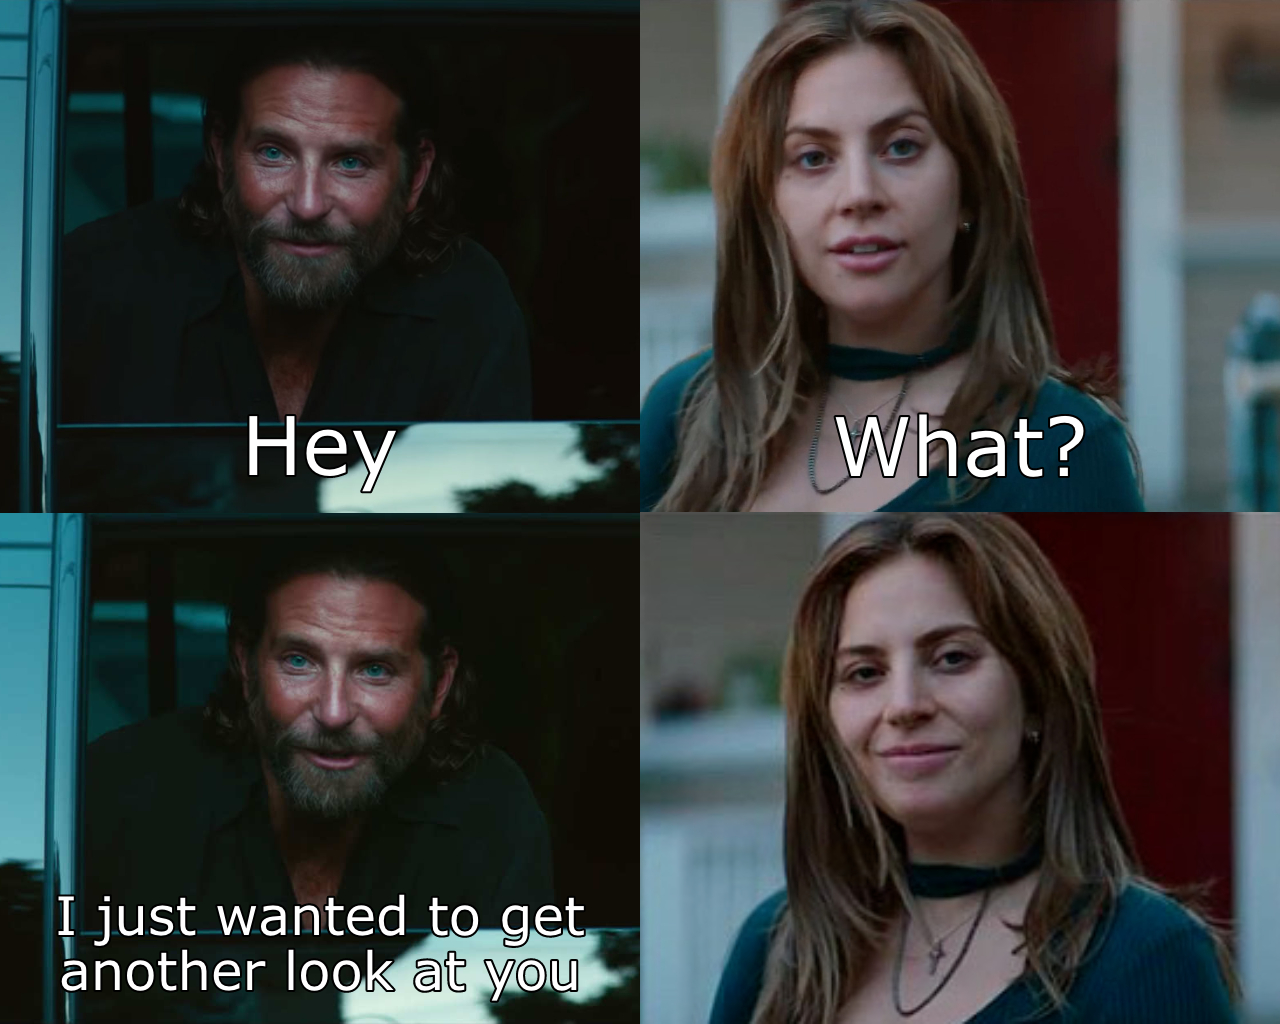 I Just Wanted To Get Another Look at You: A Star is Born Meme template